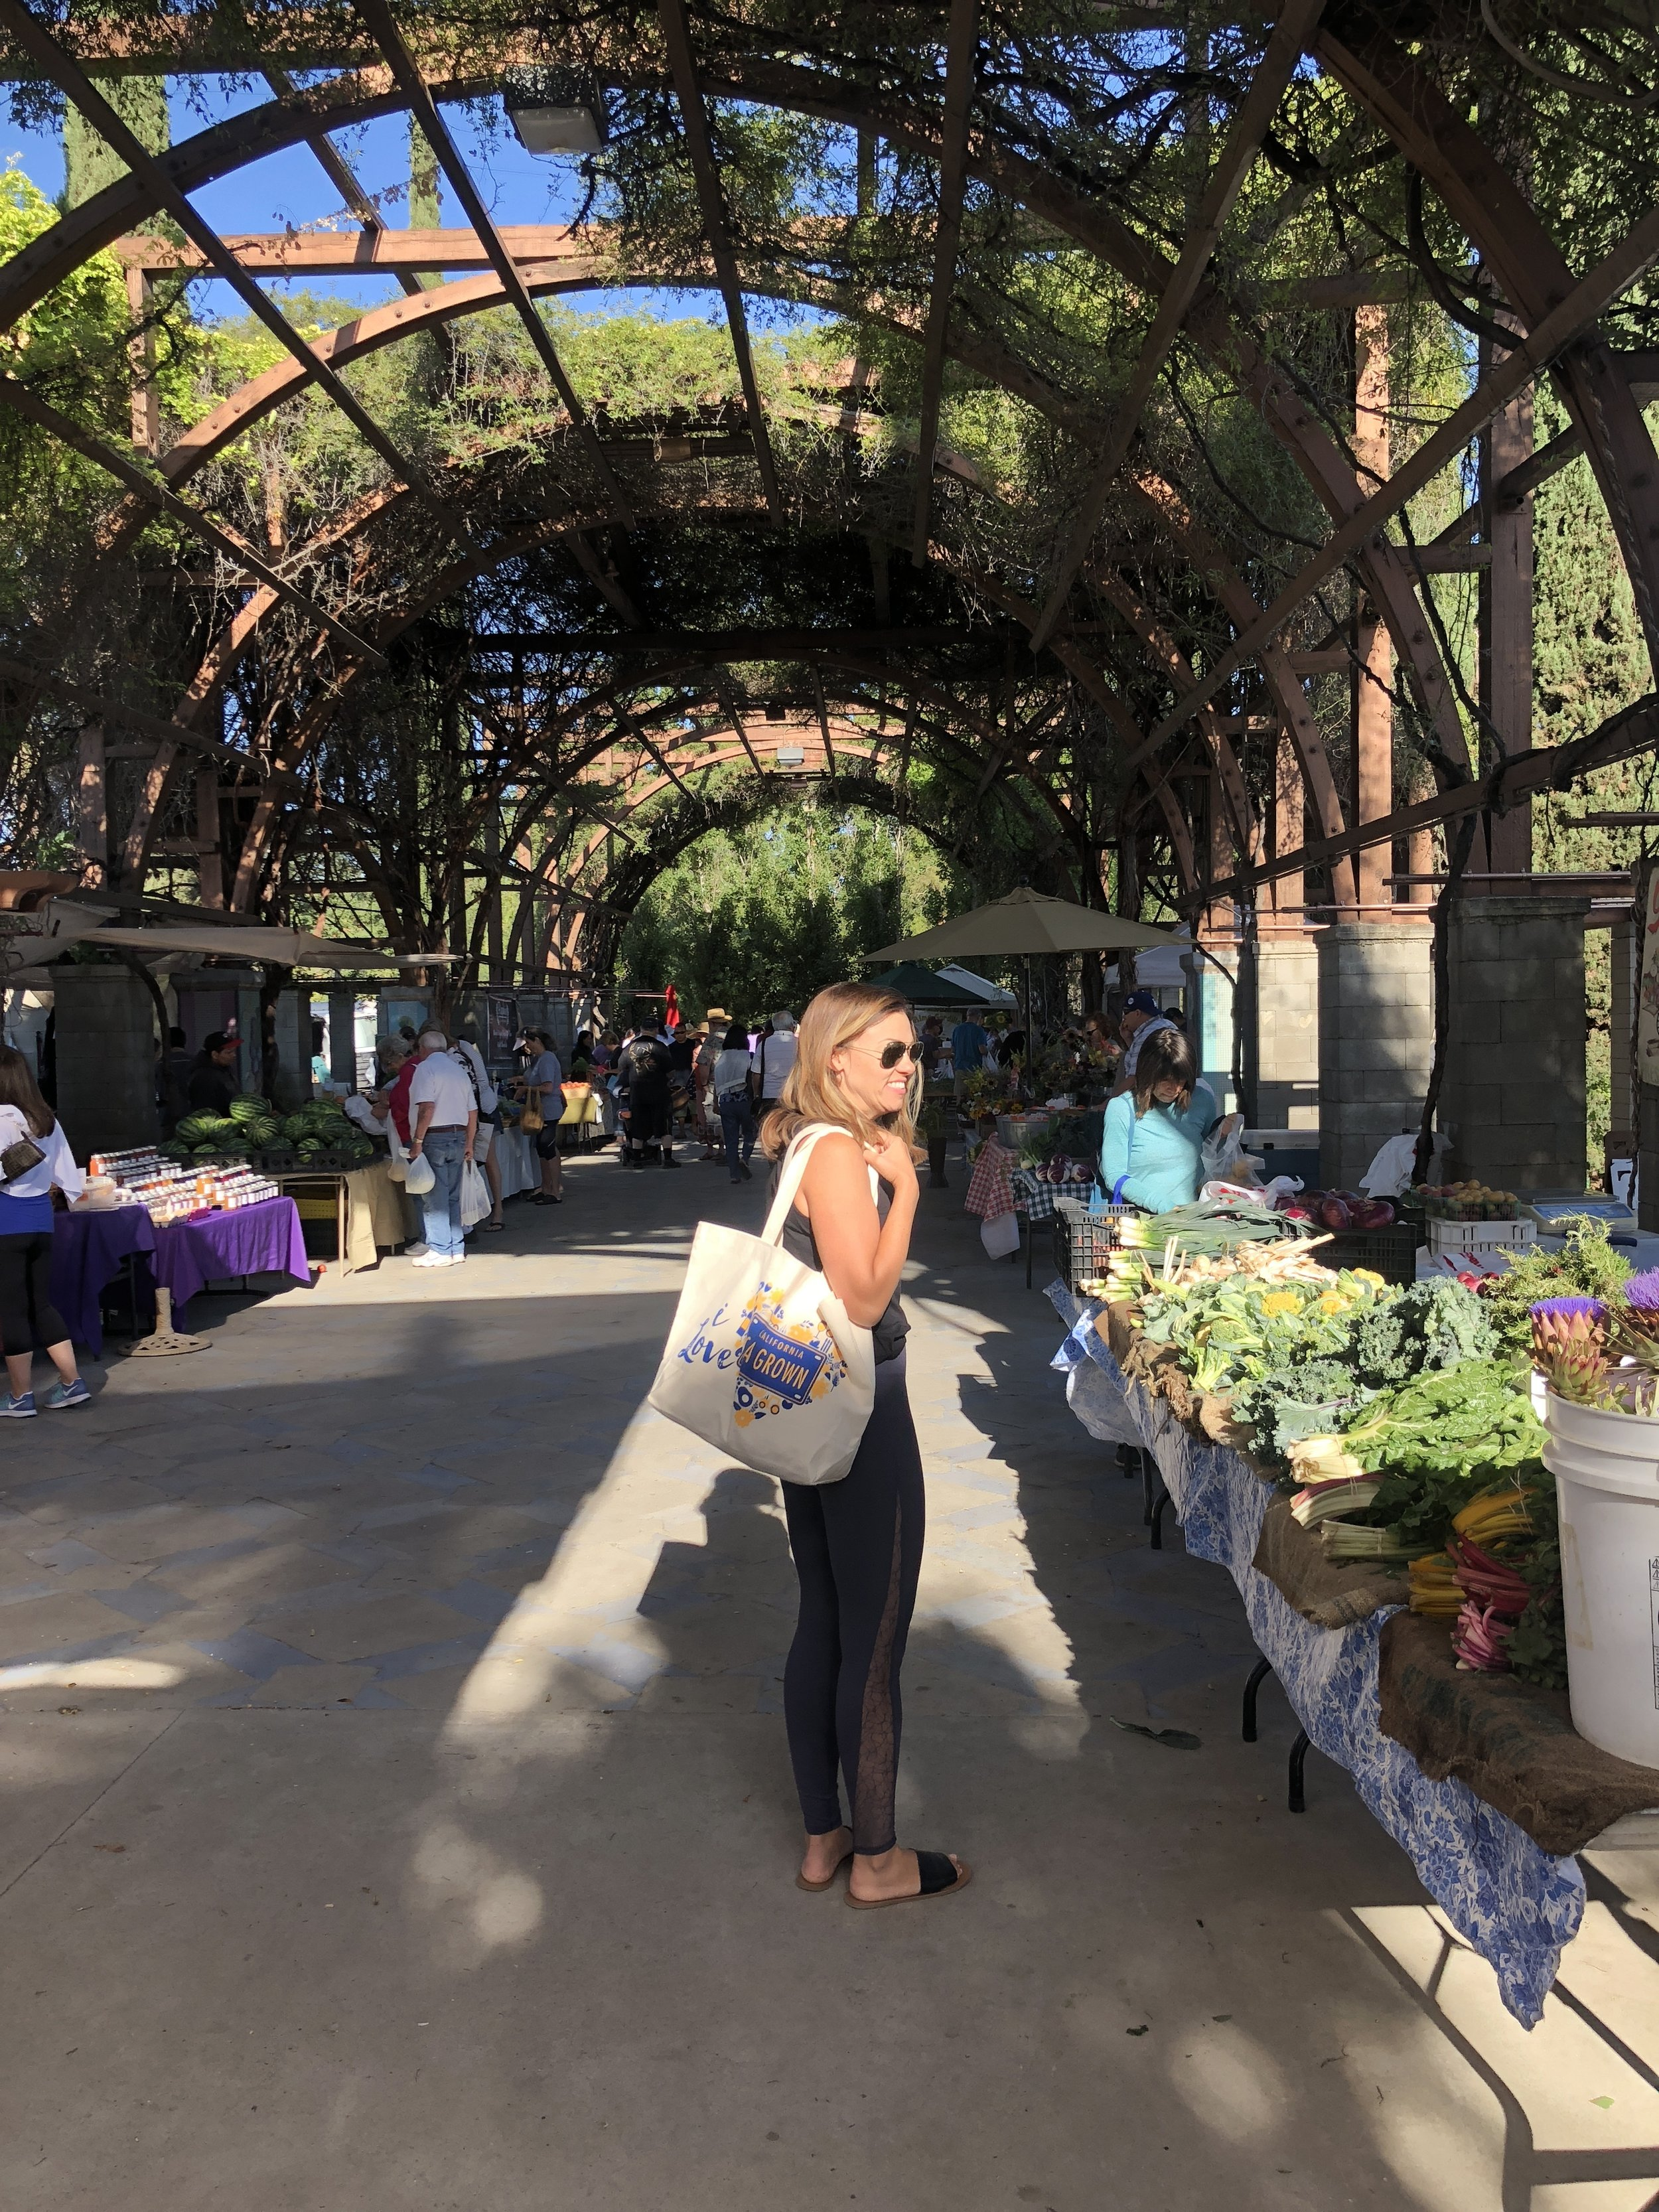 The hubby and I had a kid free morning so we topped at the market on our way to Yoga class.